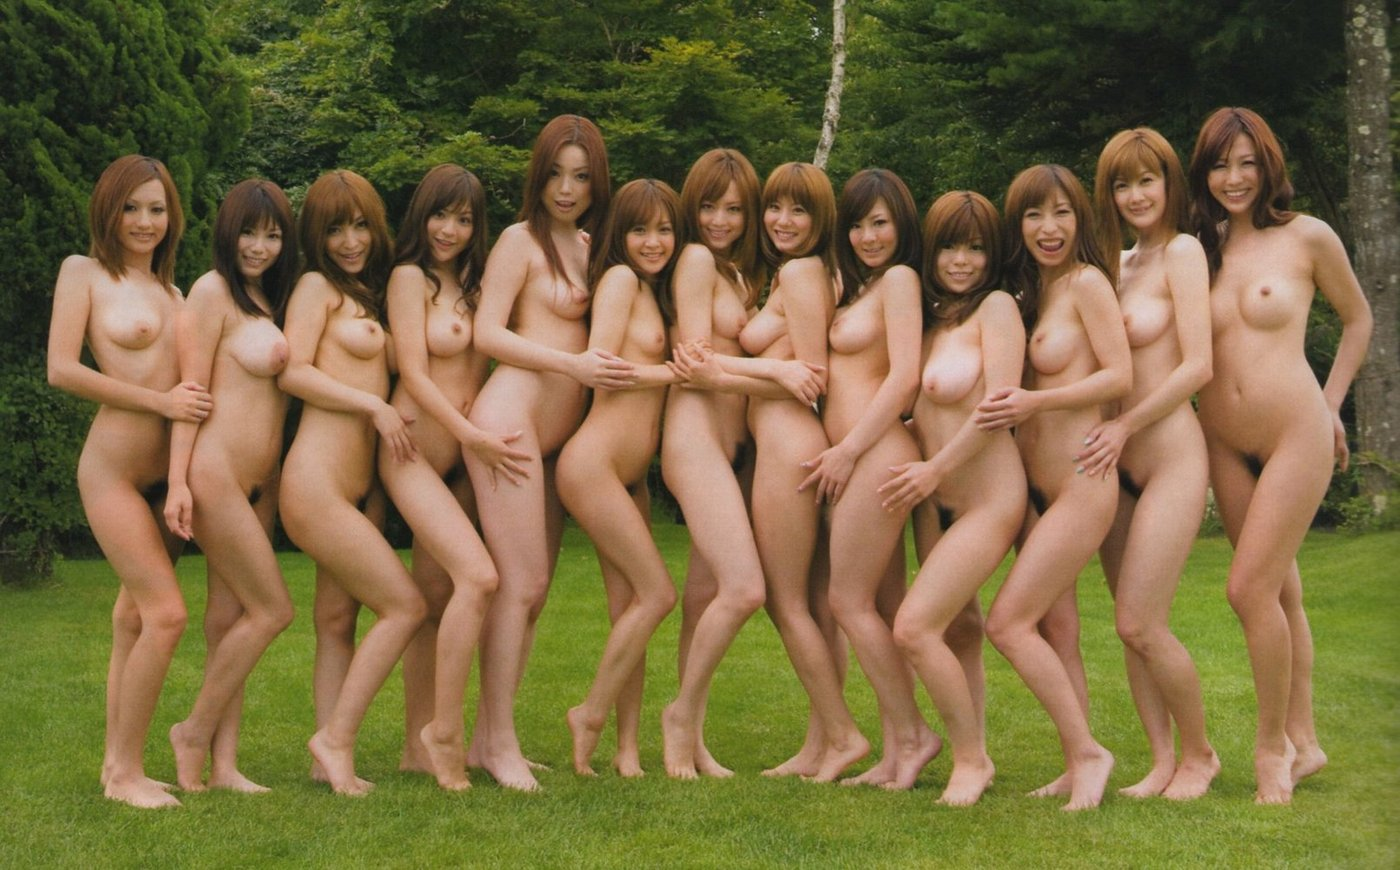 Girl group nude wallpaper hd was specially